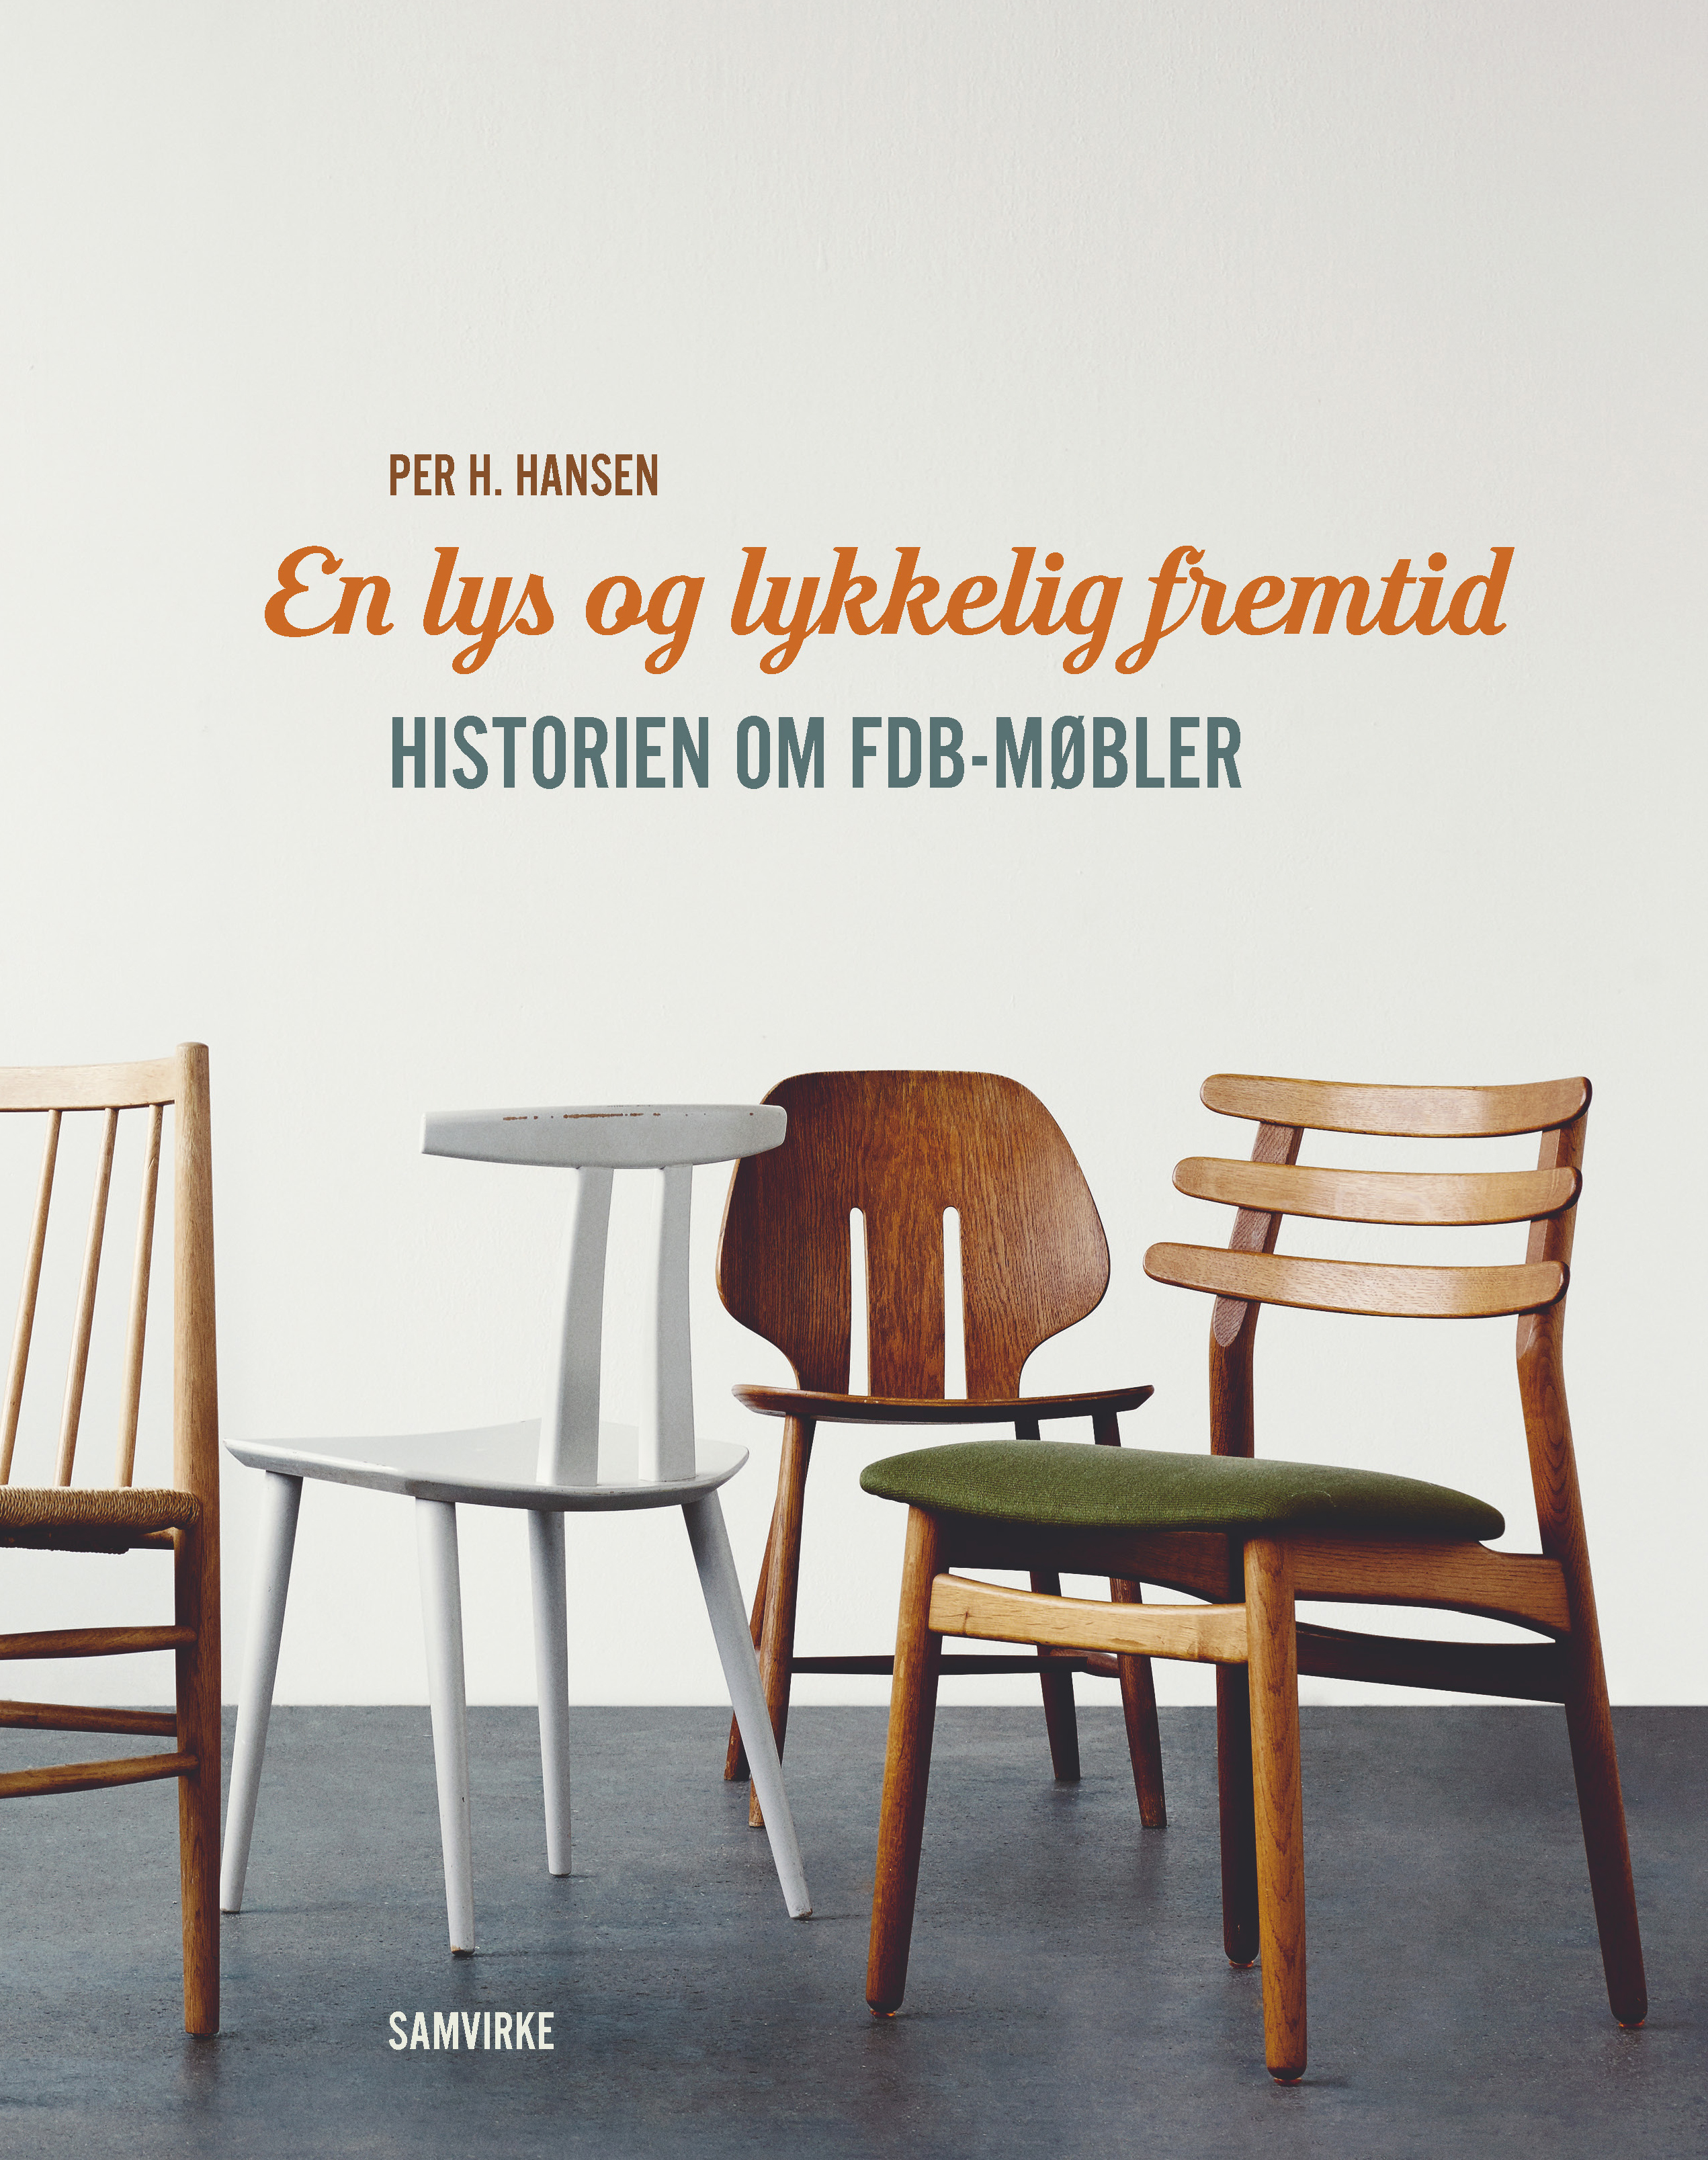 Coop follows up on FDB furniture success | danishfurniture.dk | fdb furniture